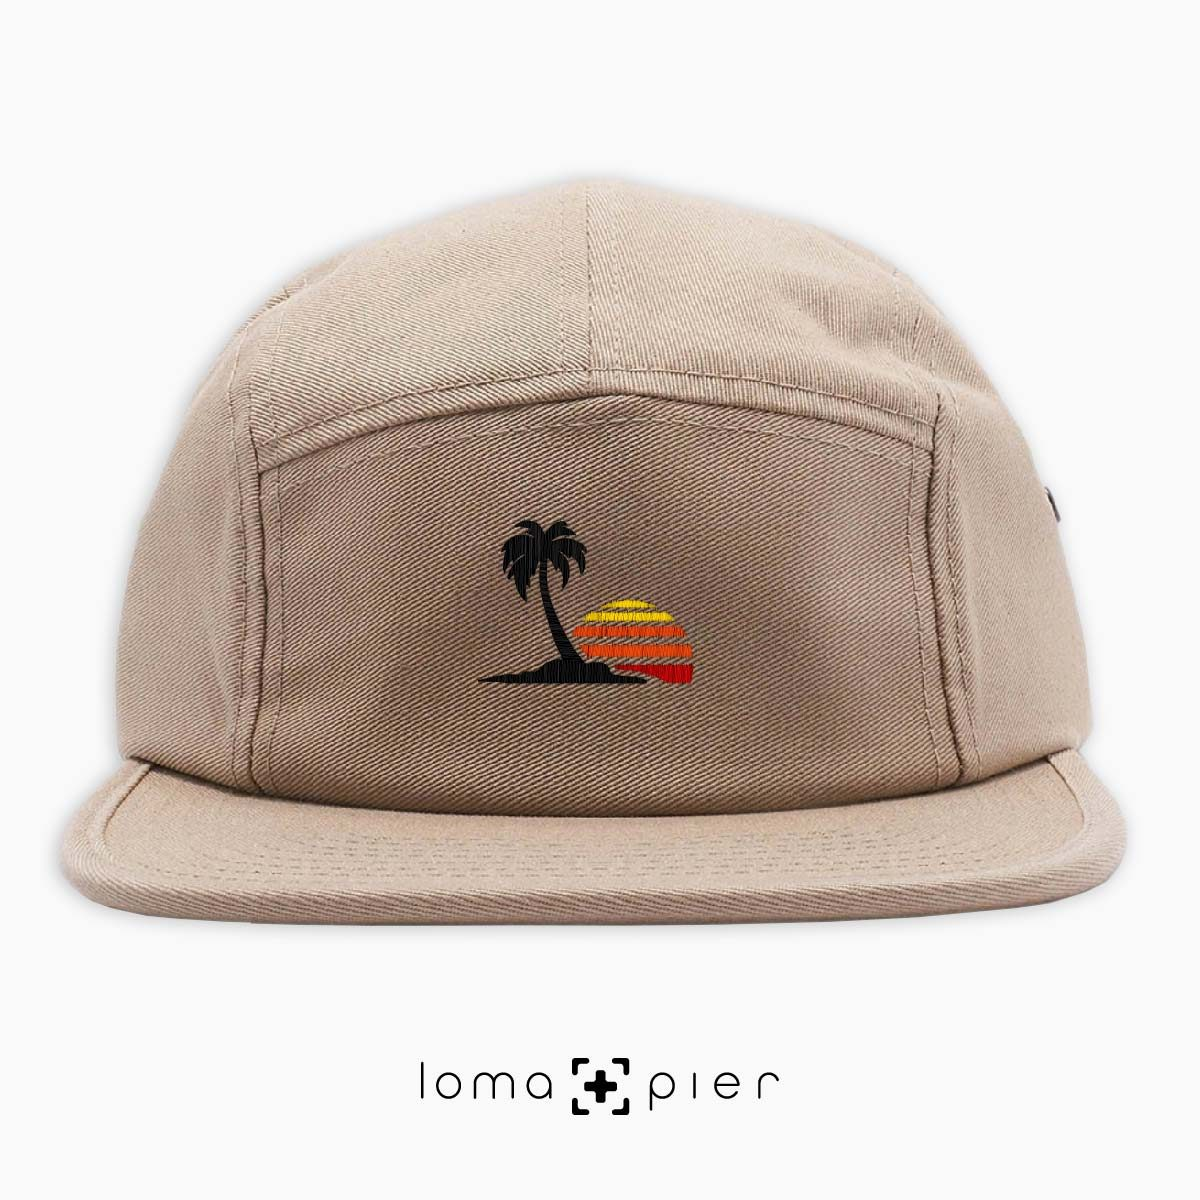 VENICE VIBES icon embroidered on a khaki cotton 5-panel hat with multicolor thread by loma+pier hat store